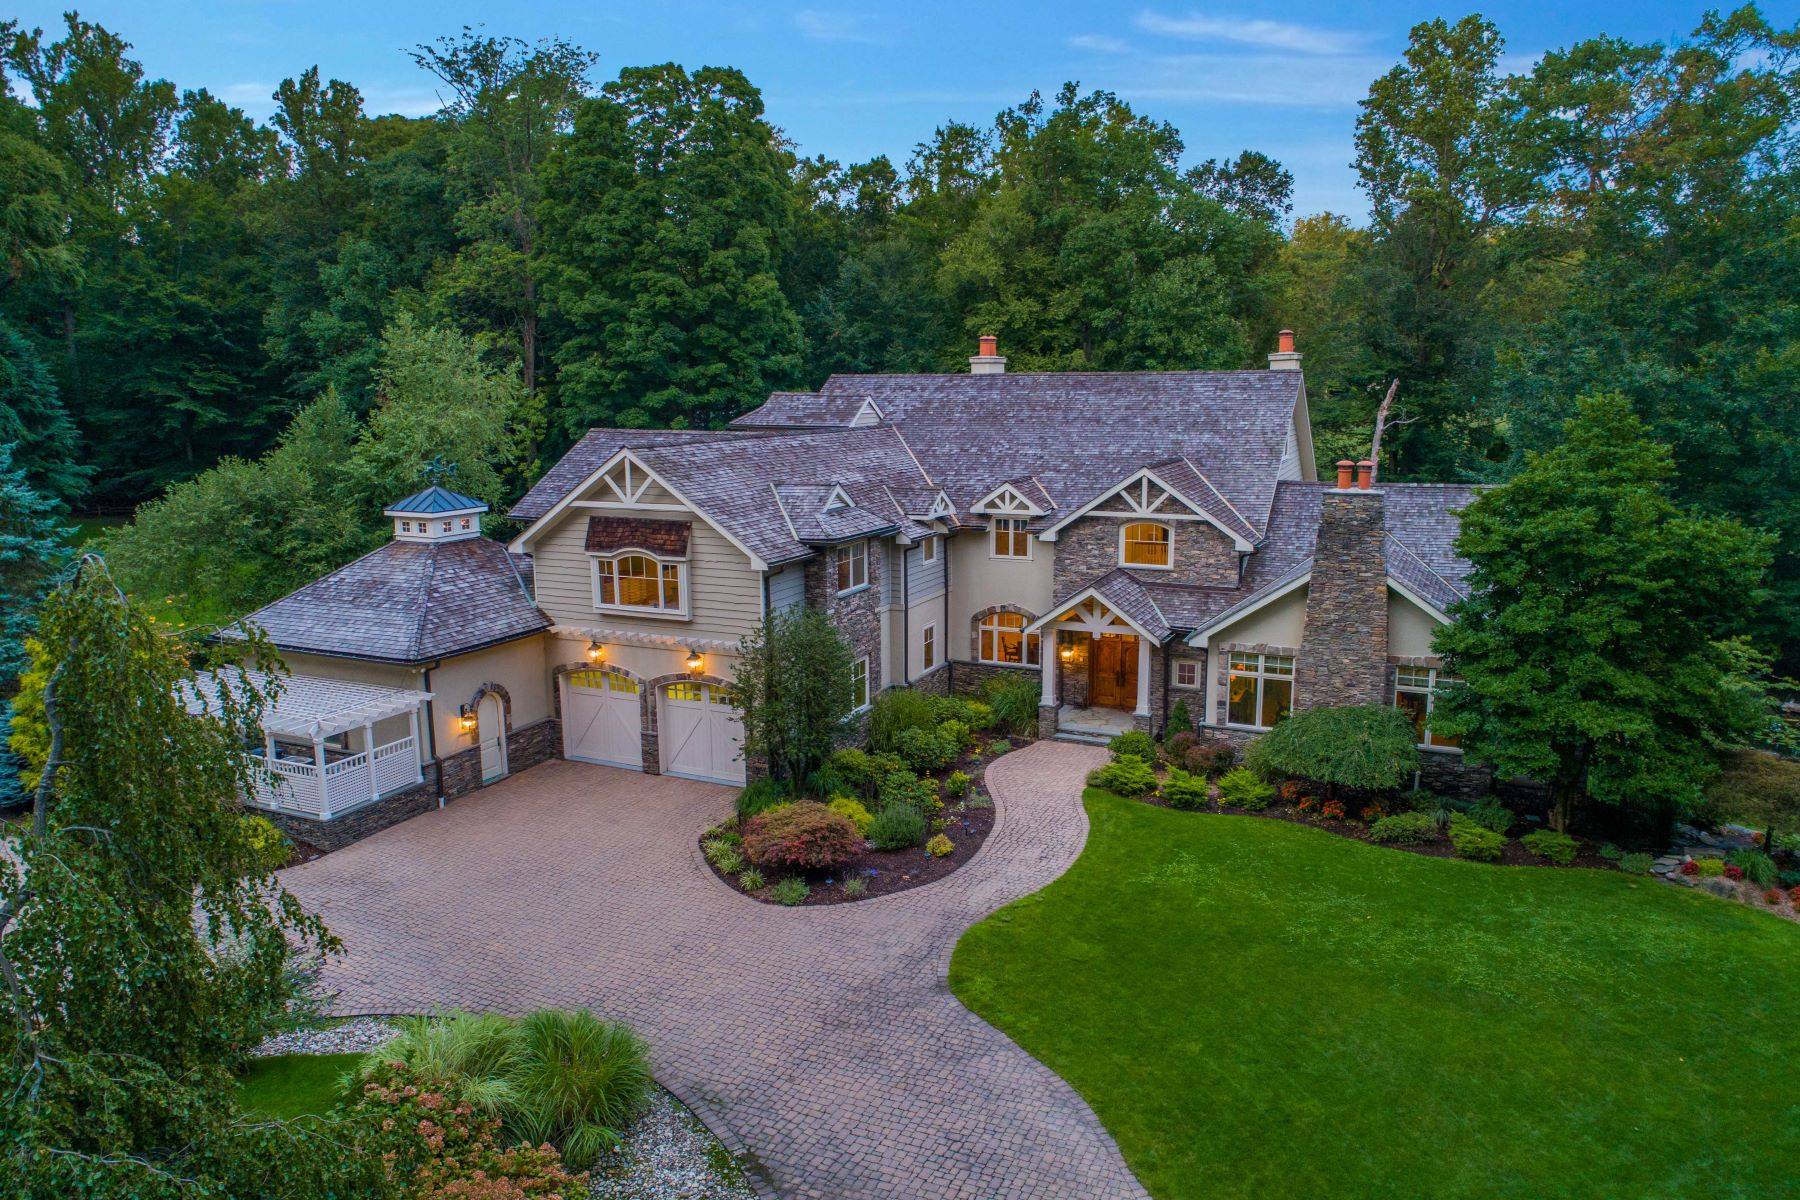 Single Family Homes for Active at EXCLUSIVE 3+ACRES ESTATE 2 Lookout Dr Saddle River, New Jersey 07458 United States